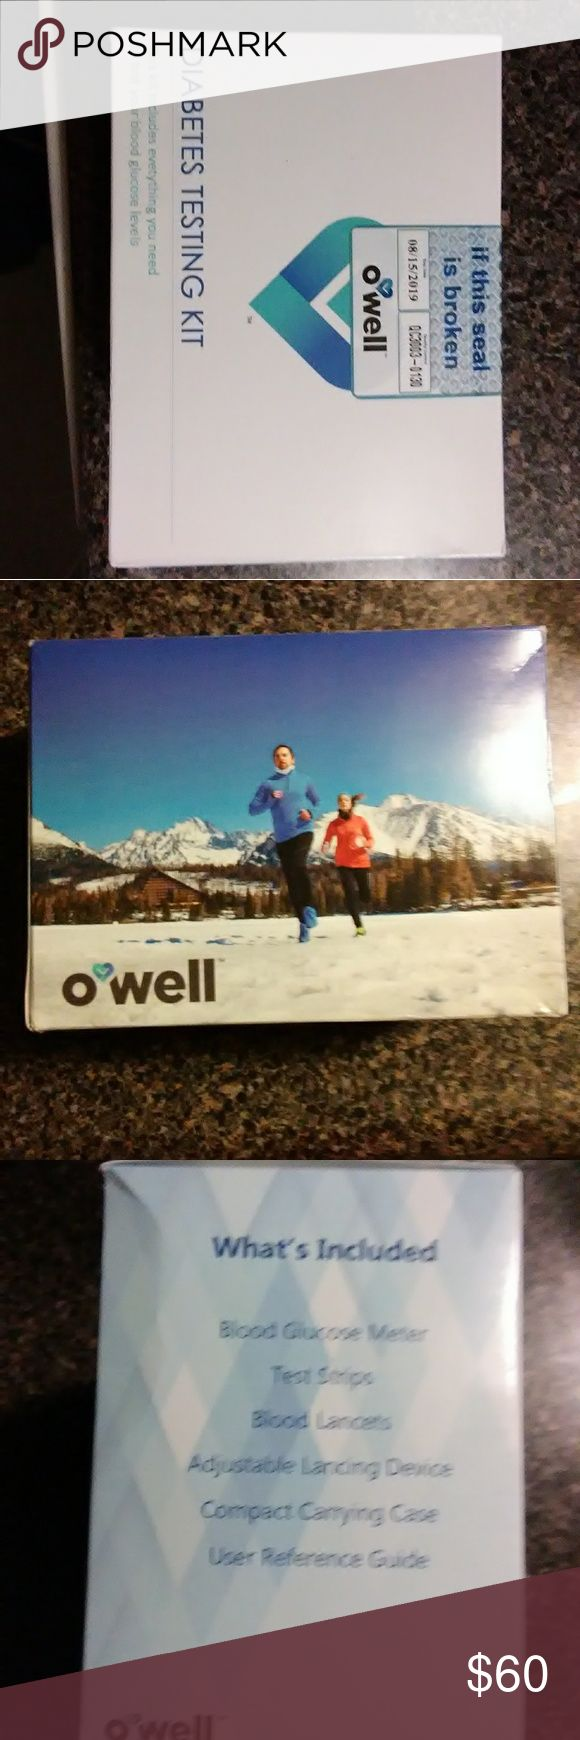 Owell Diabetes Testing Kit Diabetes testing kit never opened.. Includes Blood Glucose Meter,Test Strips, Lancets, Adjustable Lancing Device, Carrying Case and User Guide. Owell Other